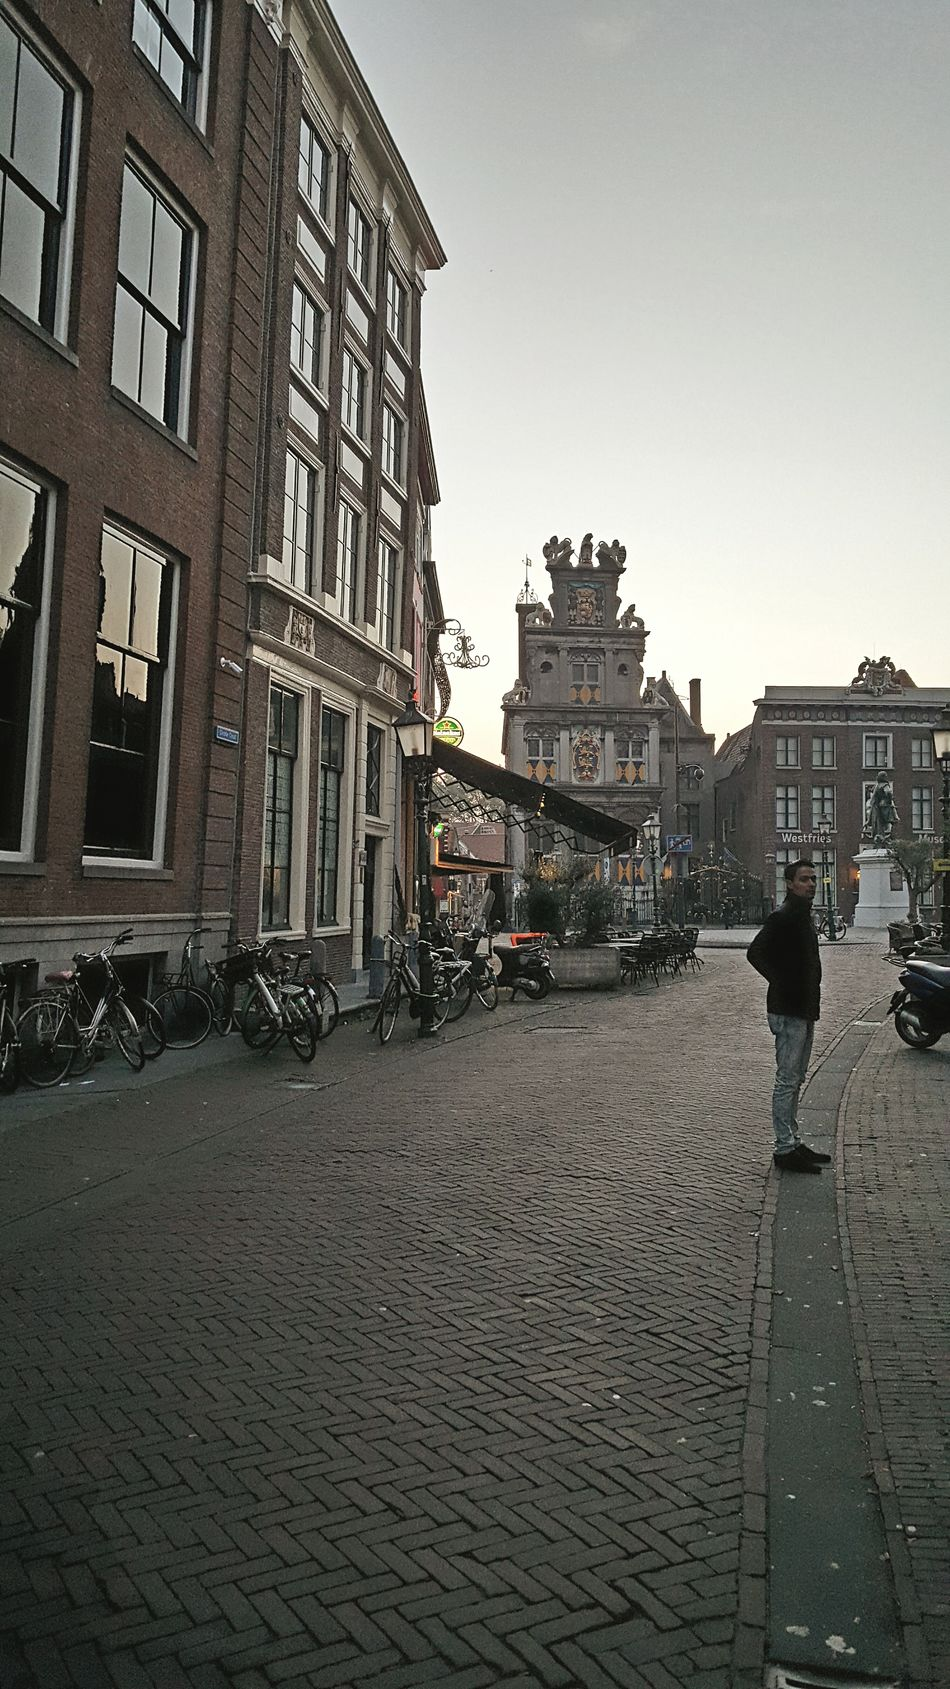 City Travel Destinations Street Architecture Building Exterior One Man Only Outdoors One Person Exploring New Ground Autumn Old Buildings Dutch Architecture Dutch House Hoorn, Netherlands Netherlands Architecture_collection Taking Pictures Hoorn Old Town Taking Photos Dutch Cities Walking City History Cityscape